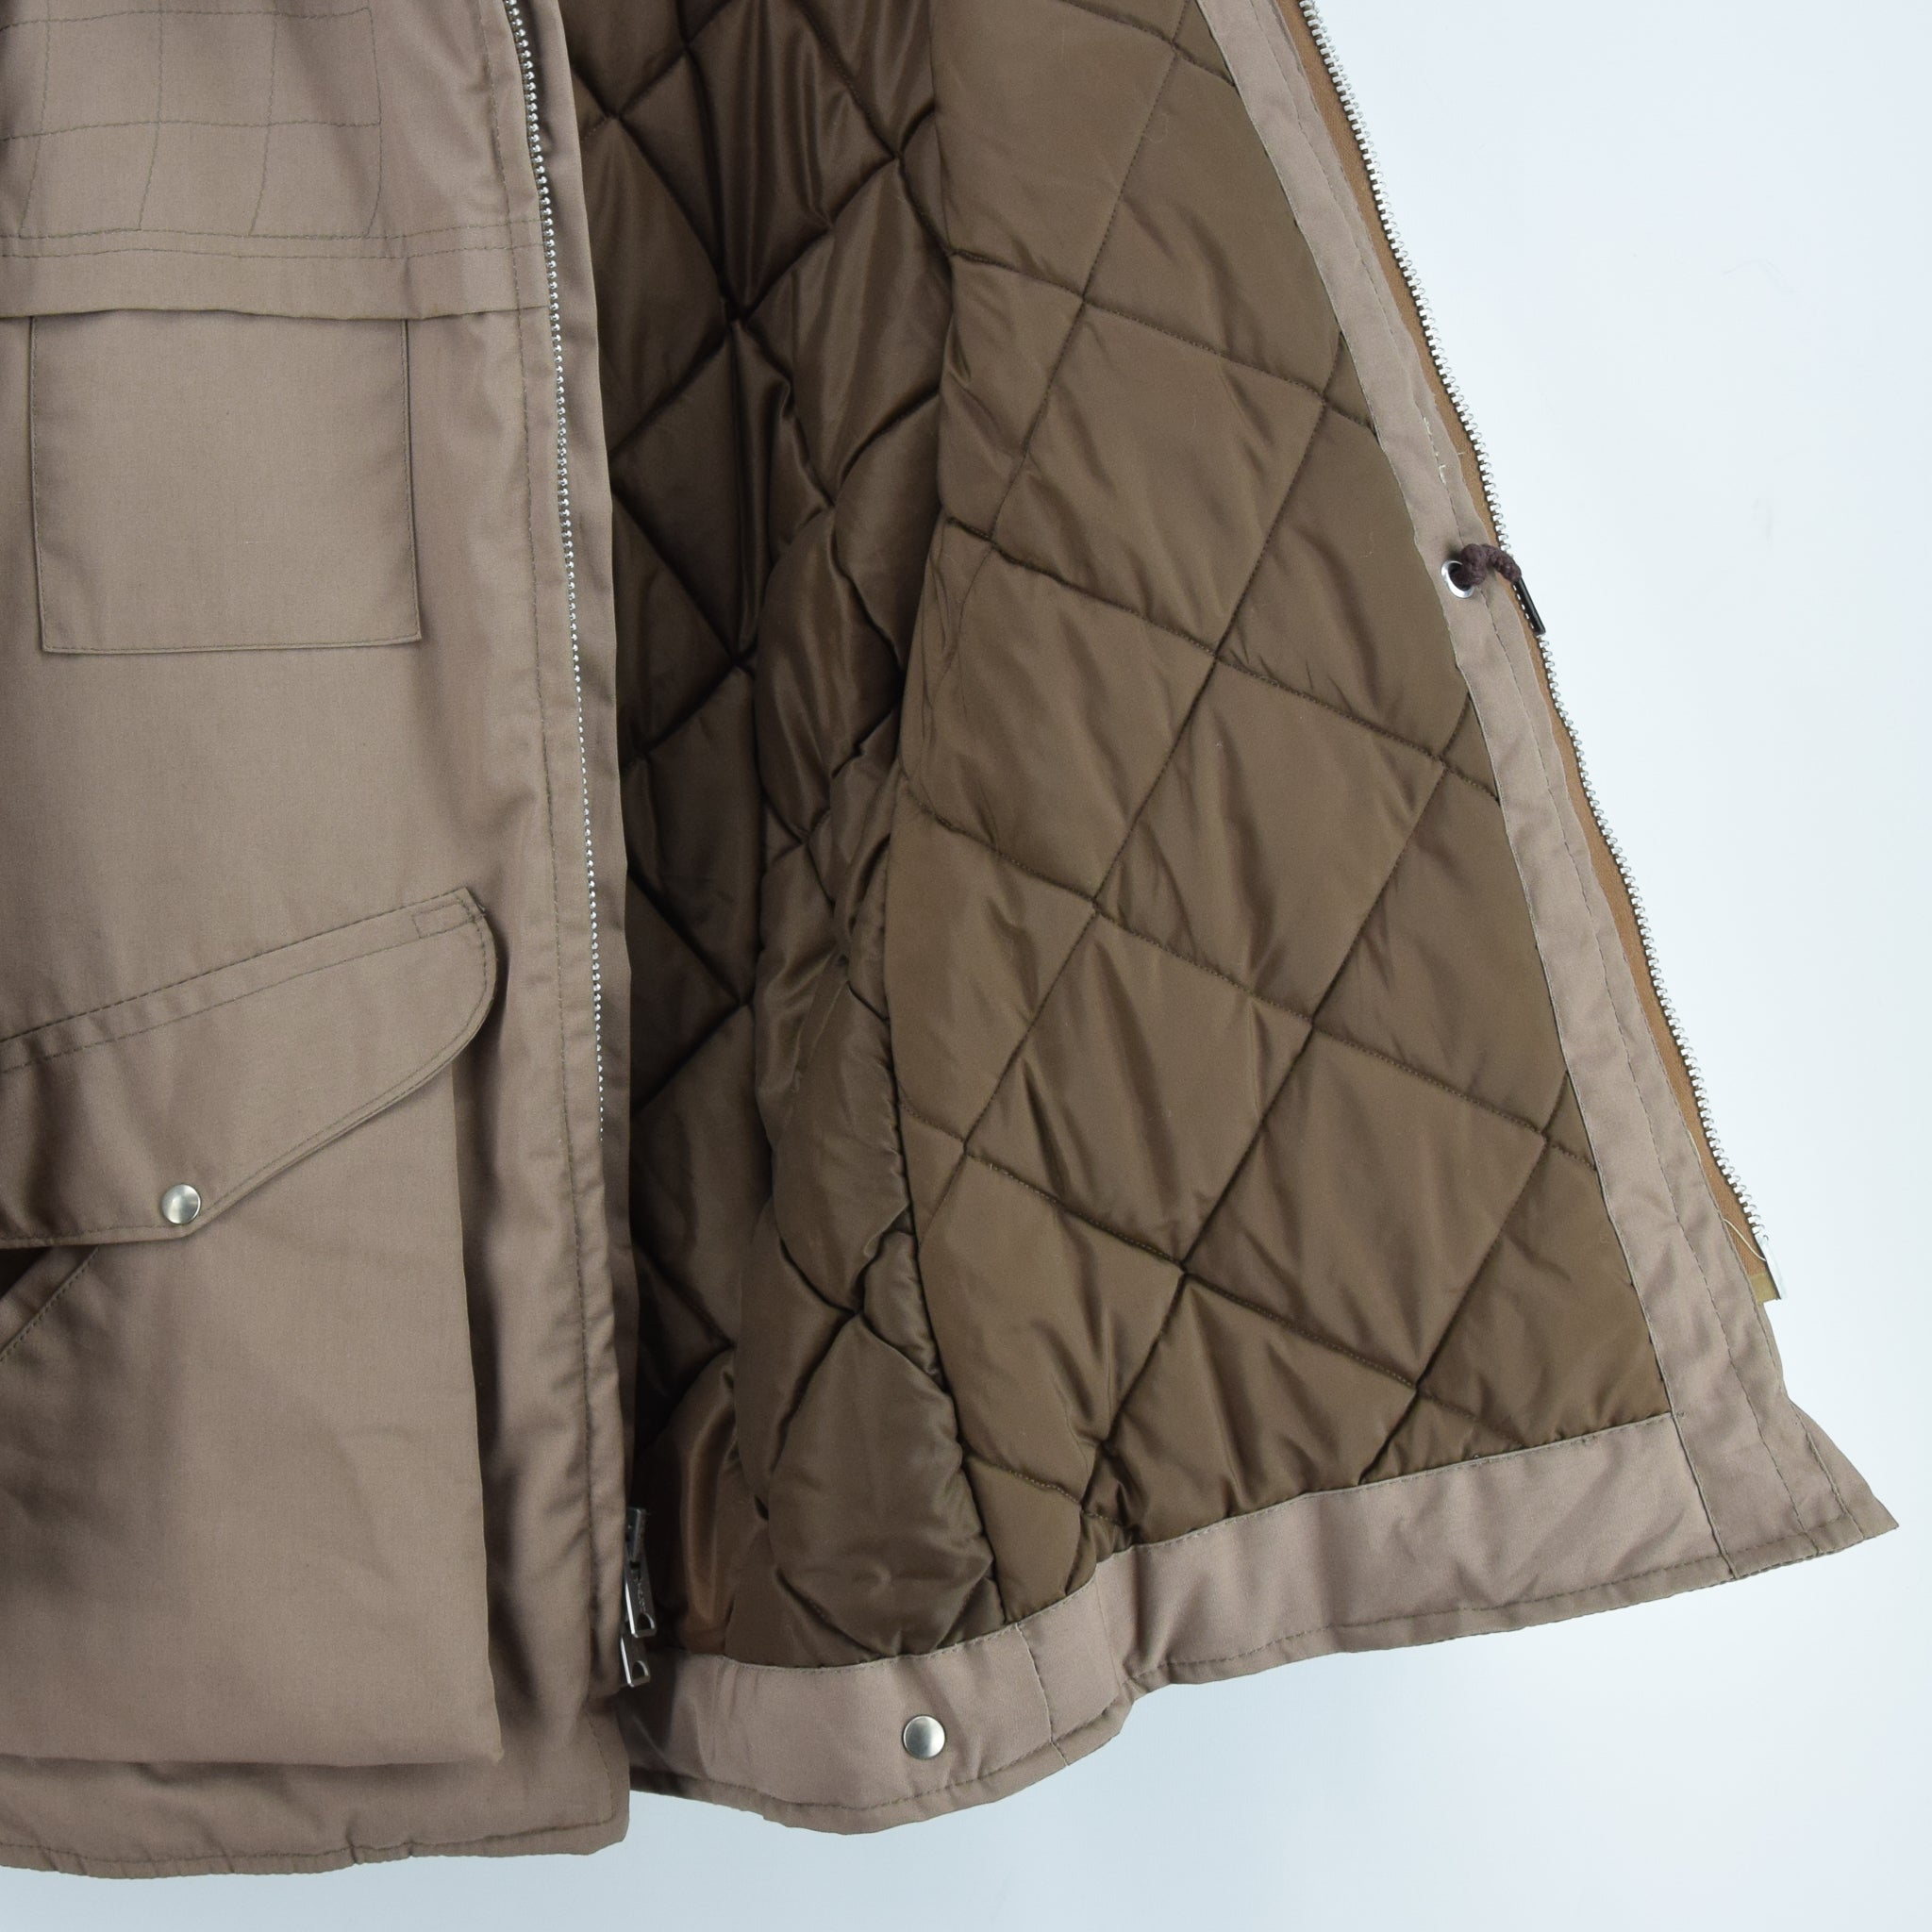 Vintage 70s 10-X Mfg Co USA Quilted Hunting Shooting Jacket Talon Zip XS / S lining